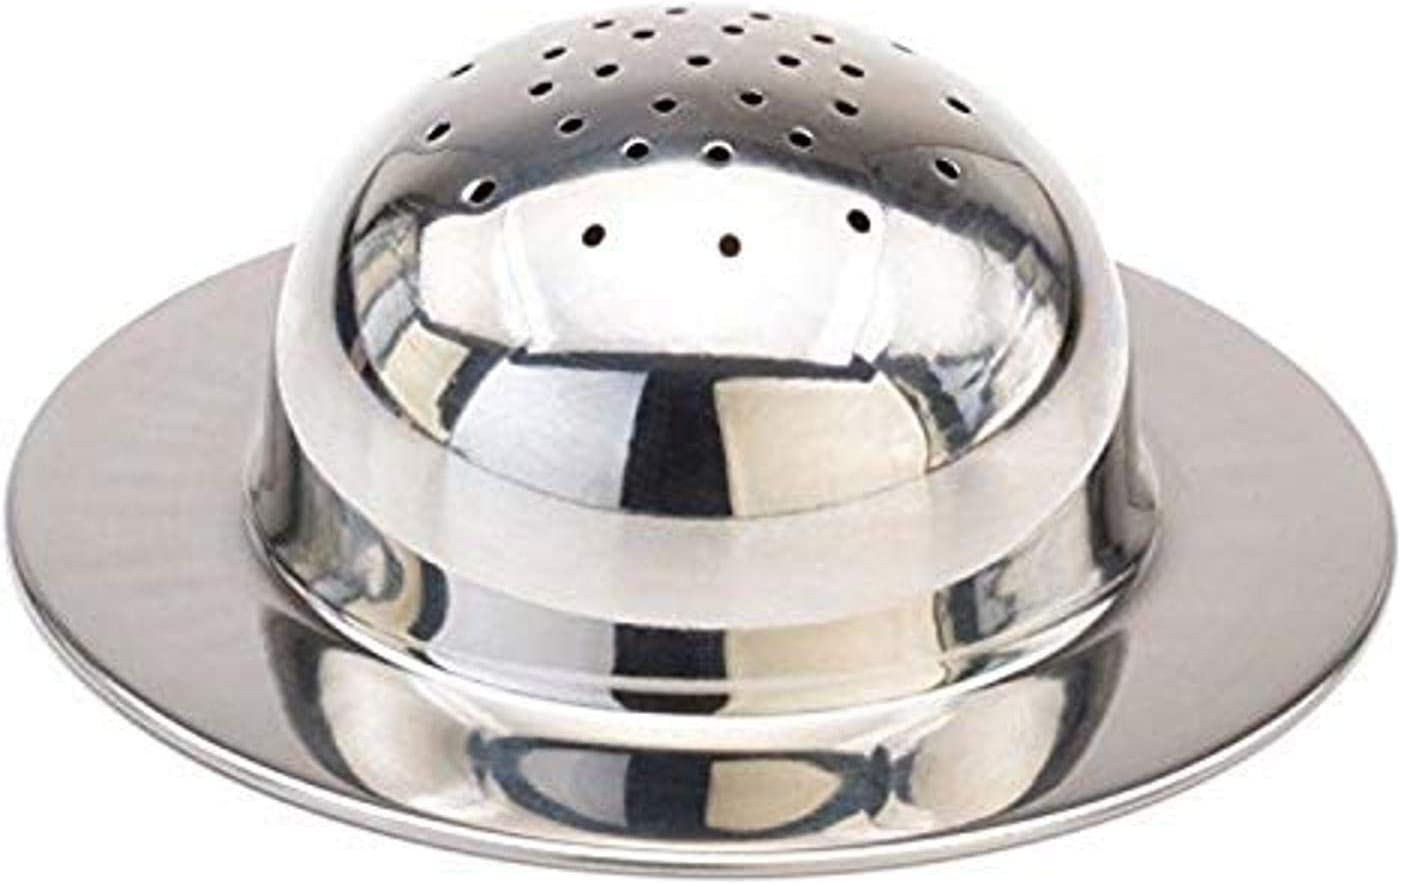 Our Pets Aroma Dome Insert Slow Feeder, Silver, Model:2400013087